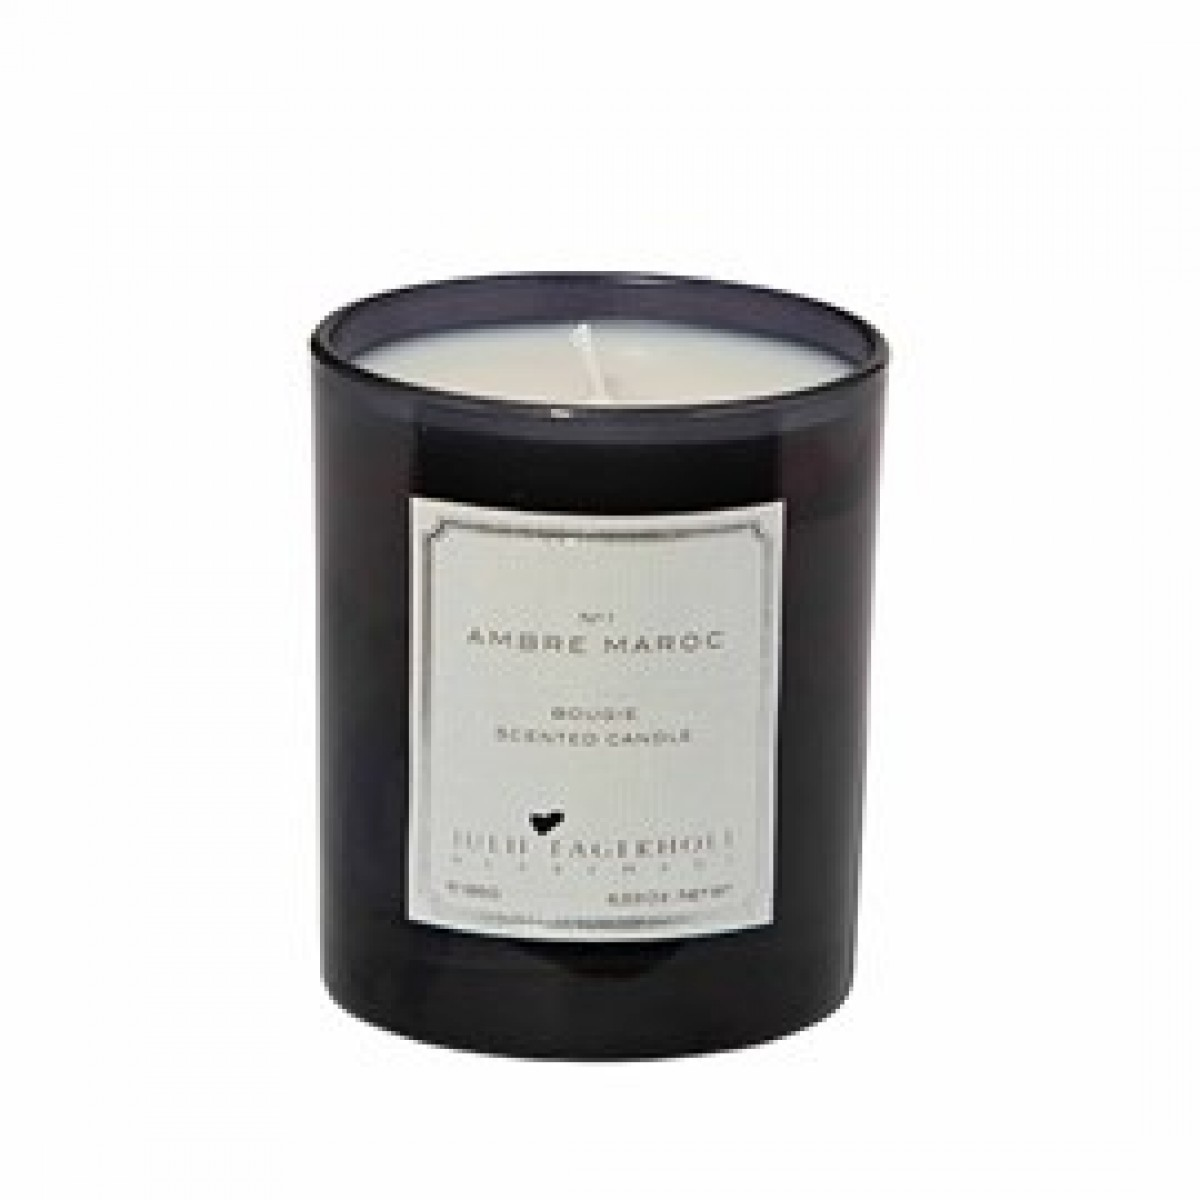 Julie Fagerholt Heartmade No1 Maroc Candles-31